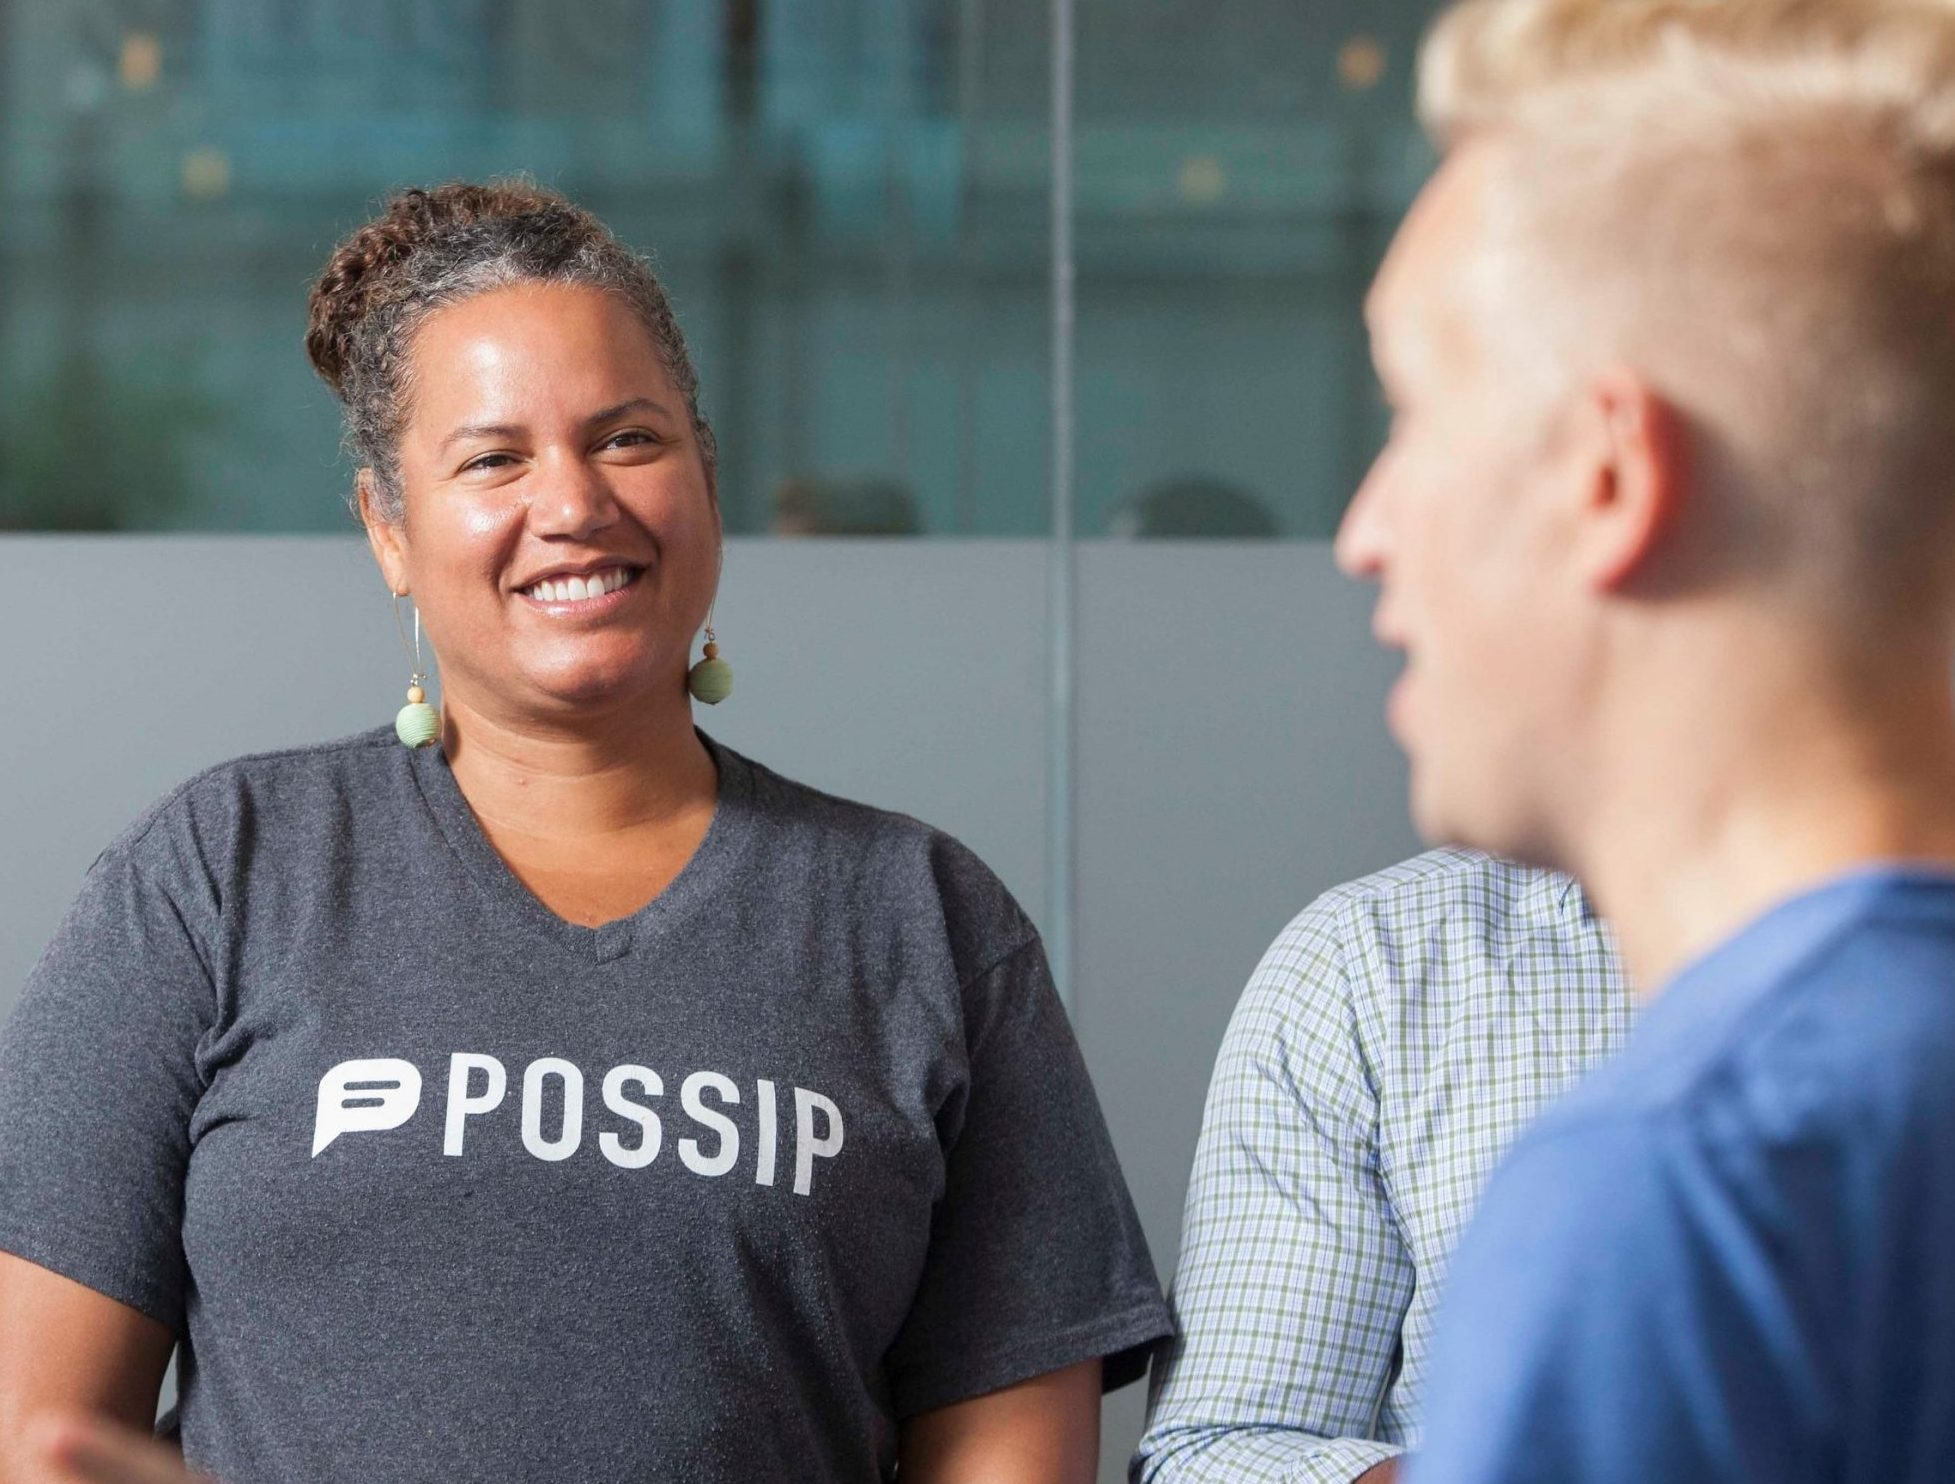 Possip founder and CEO Shani Dowell.